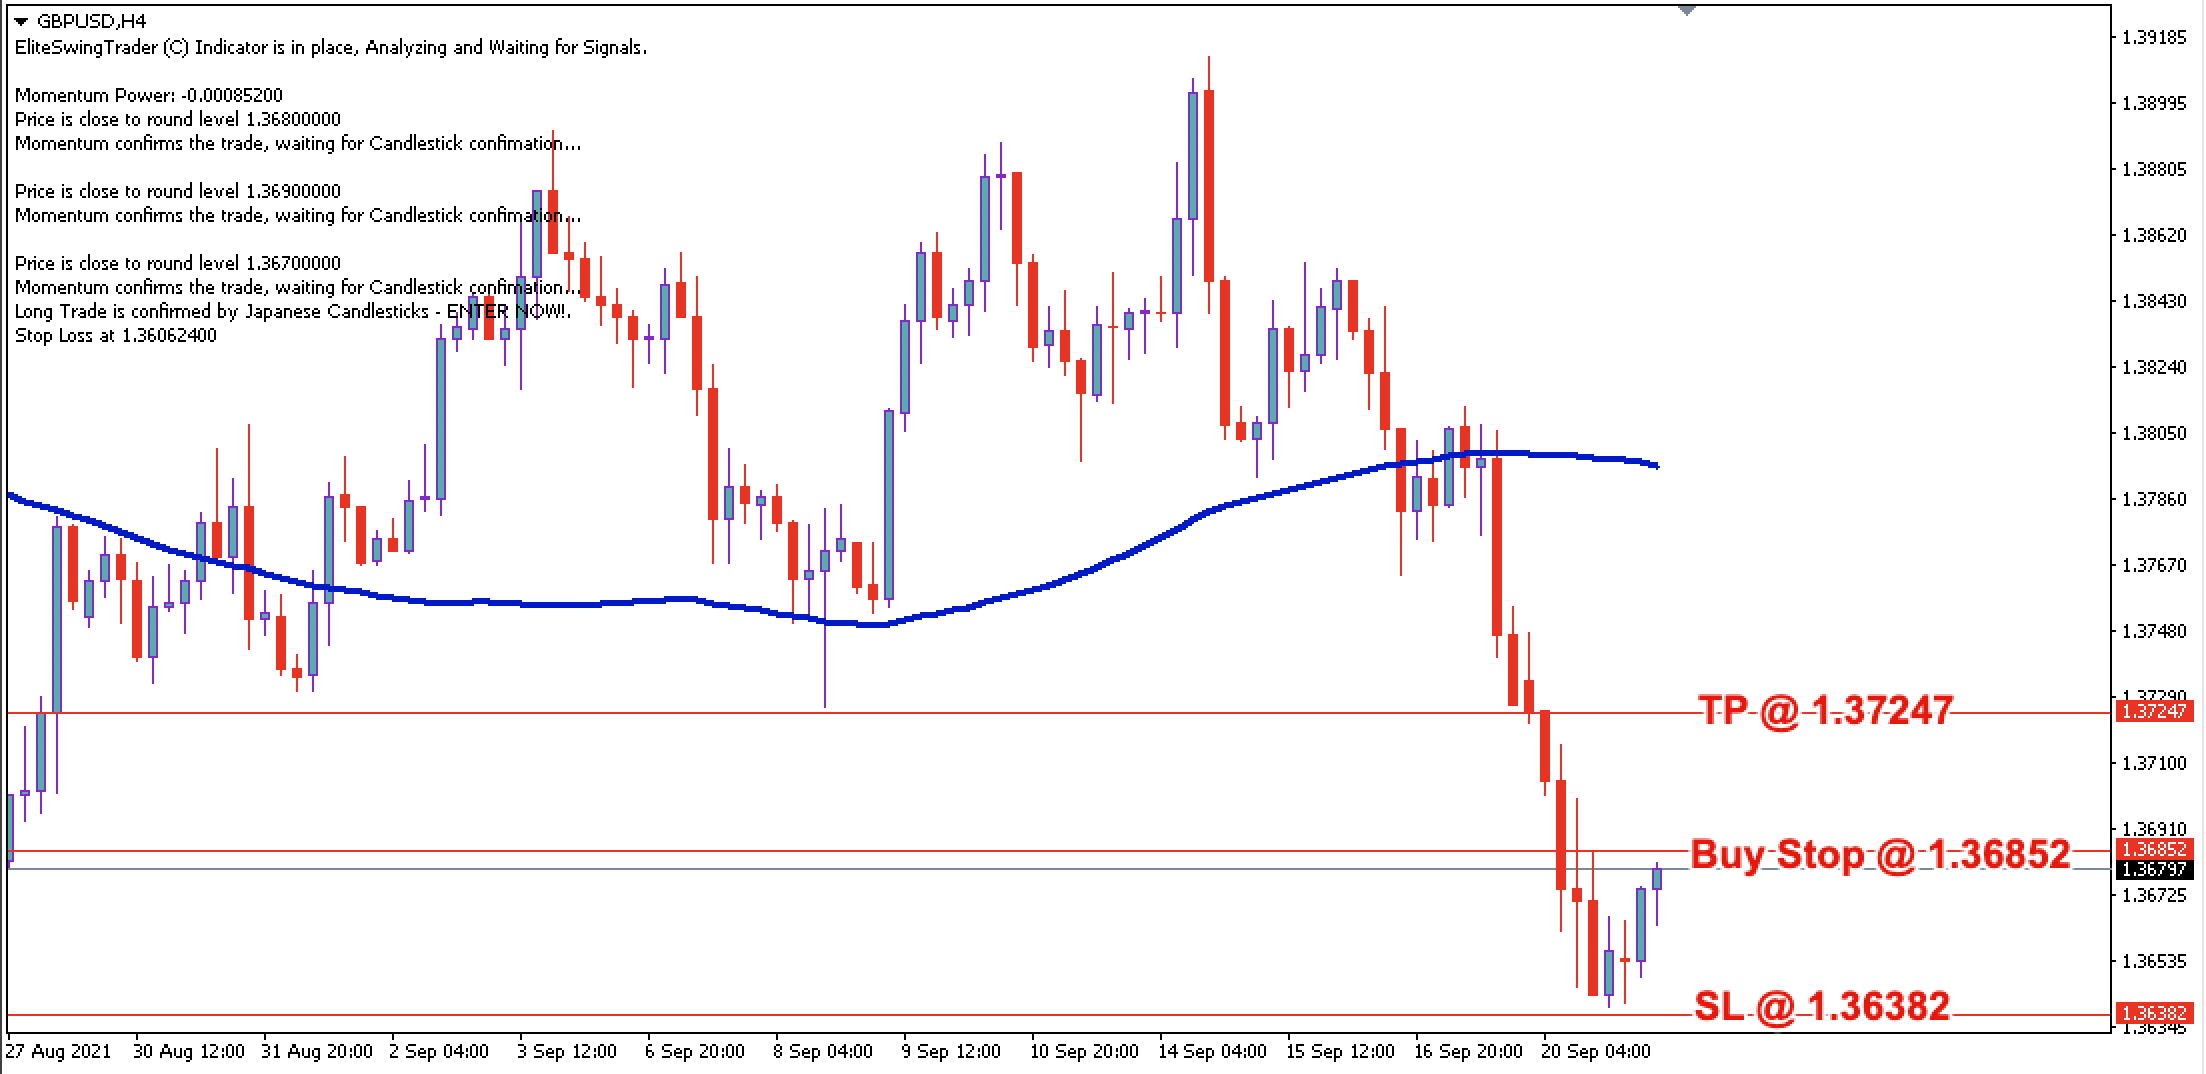 GBP/USD Daily Price Forecast – 21st Sept 2021